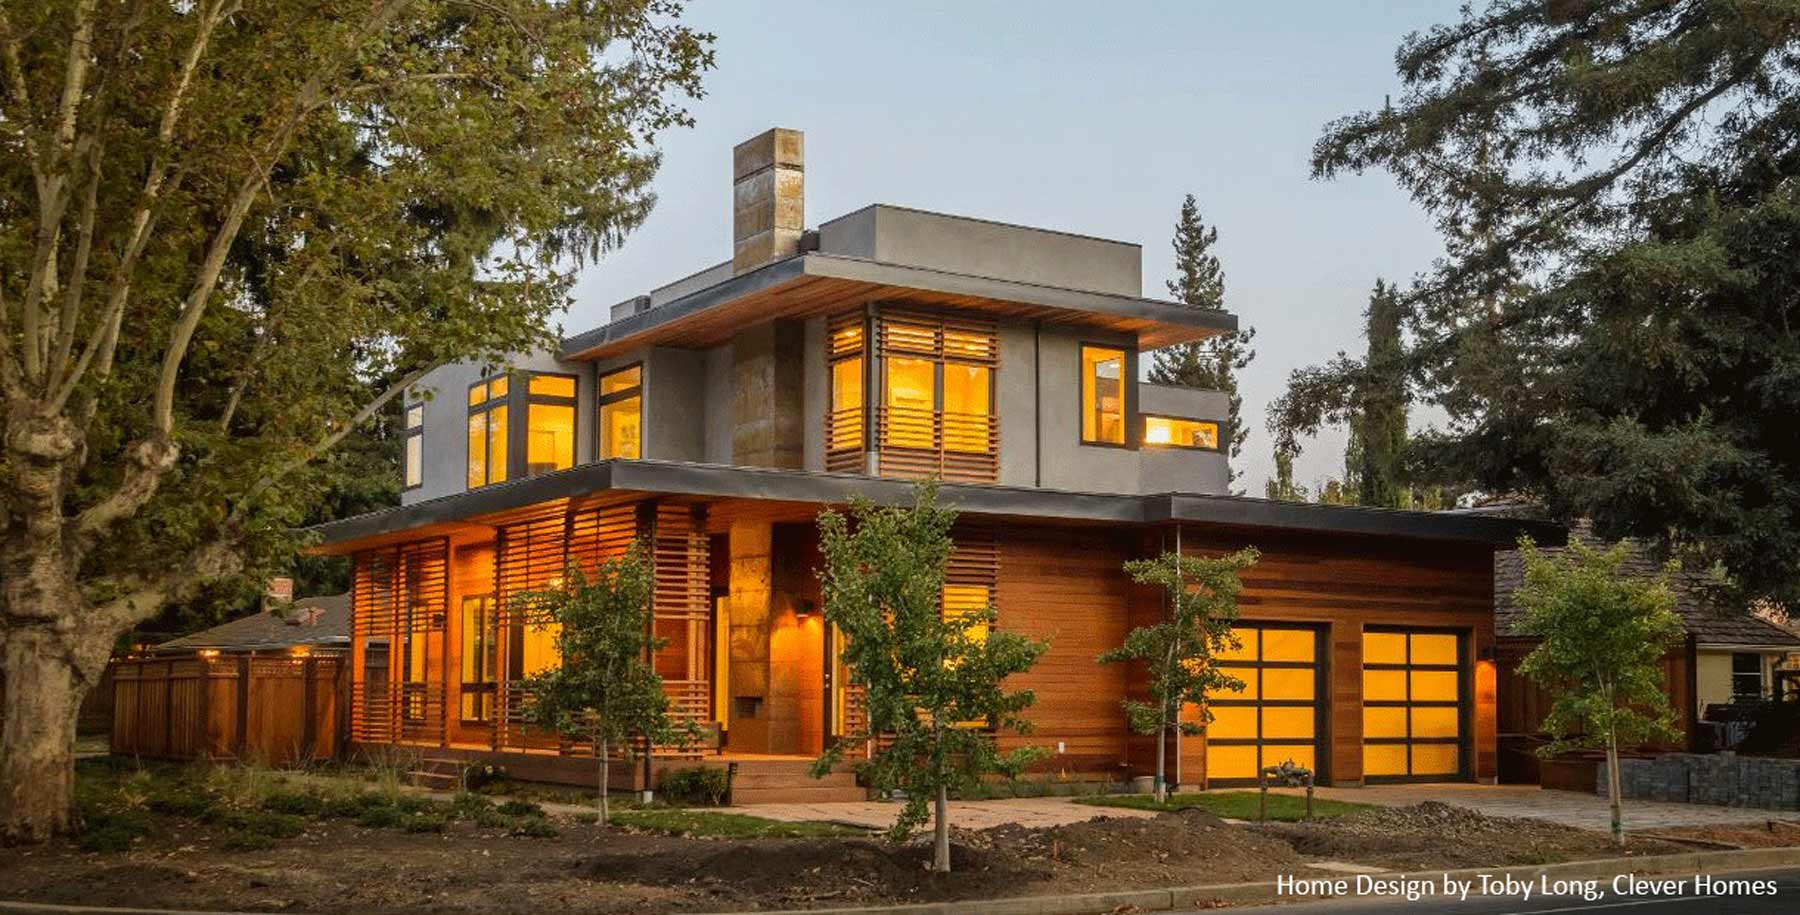 Top 10 Reasons To Purchase A Modular or Manufactured Home